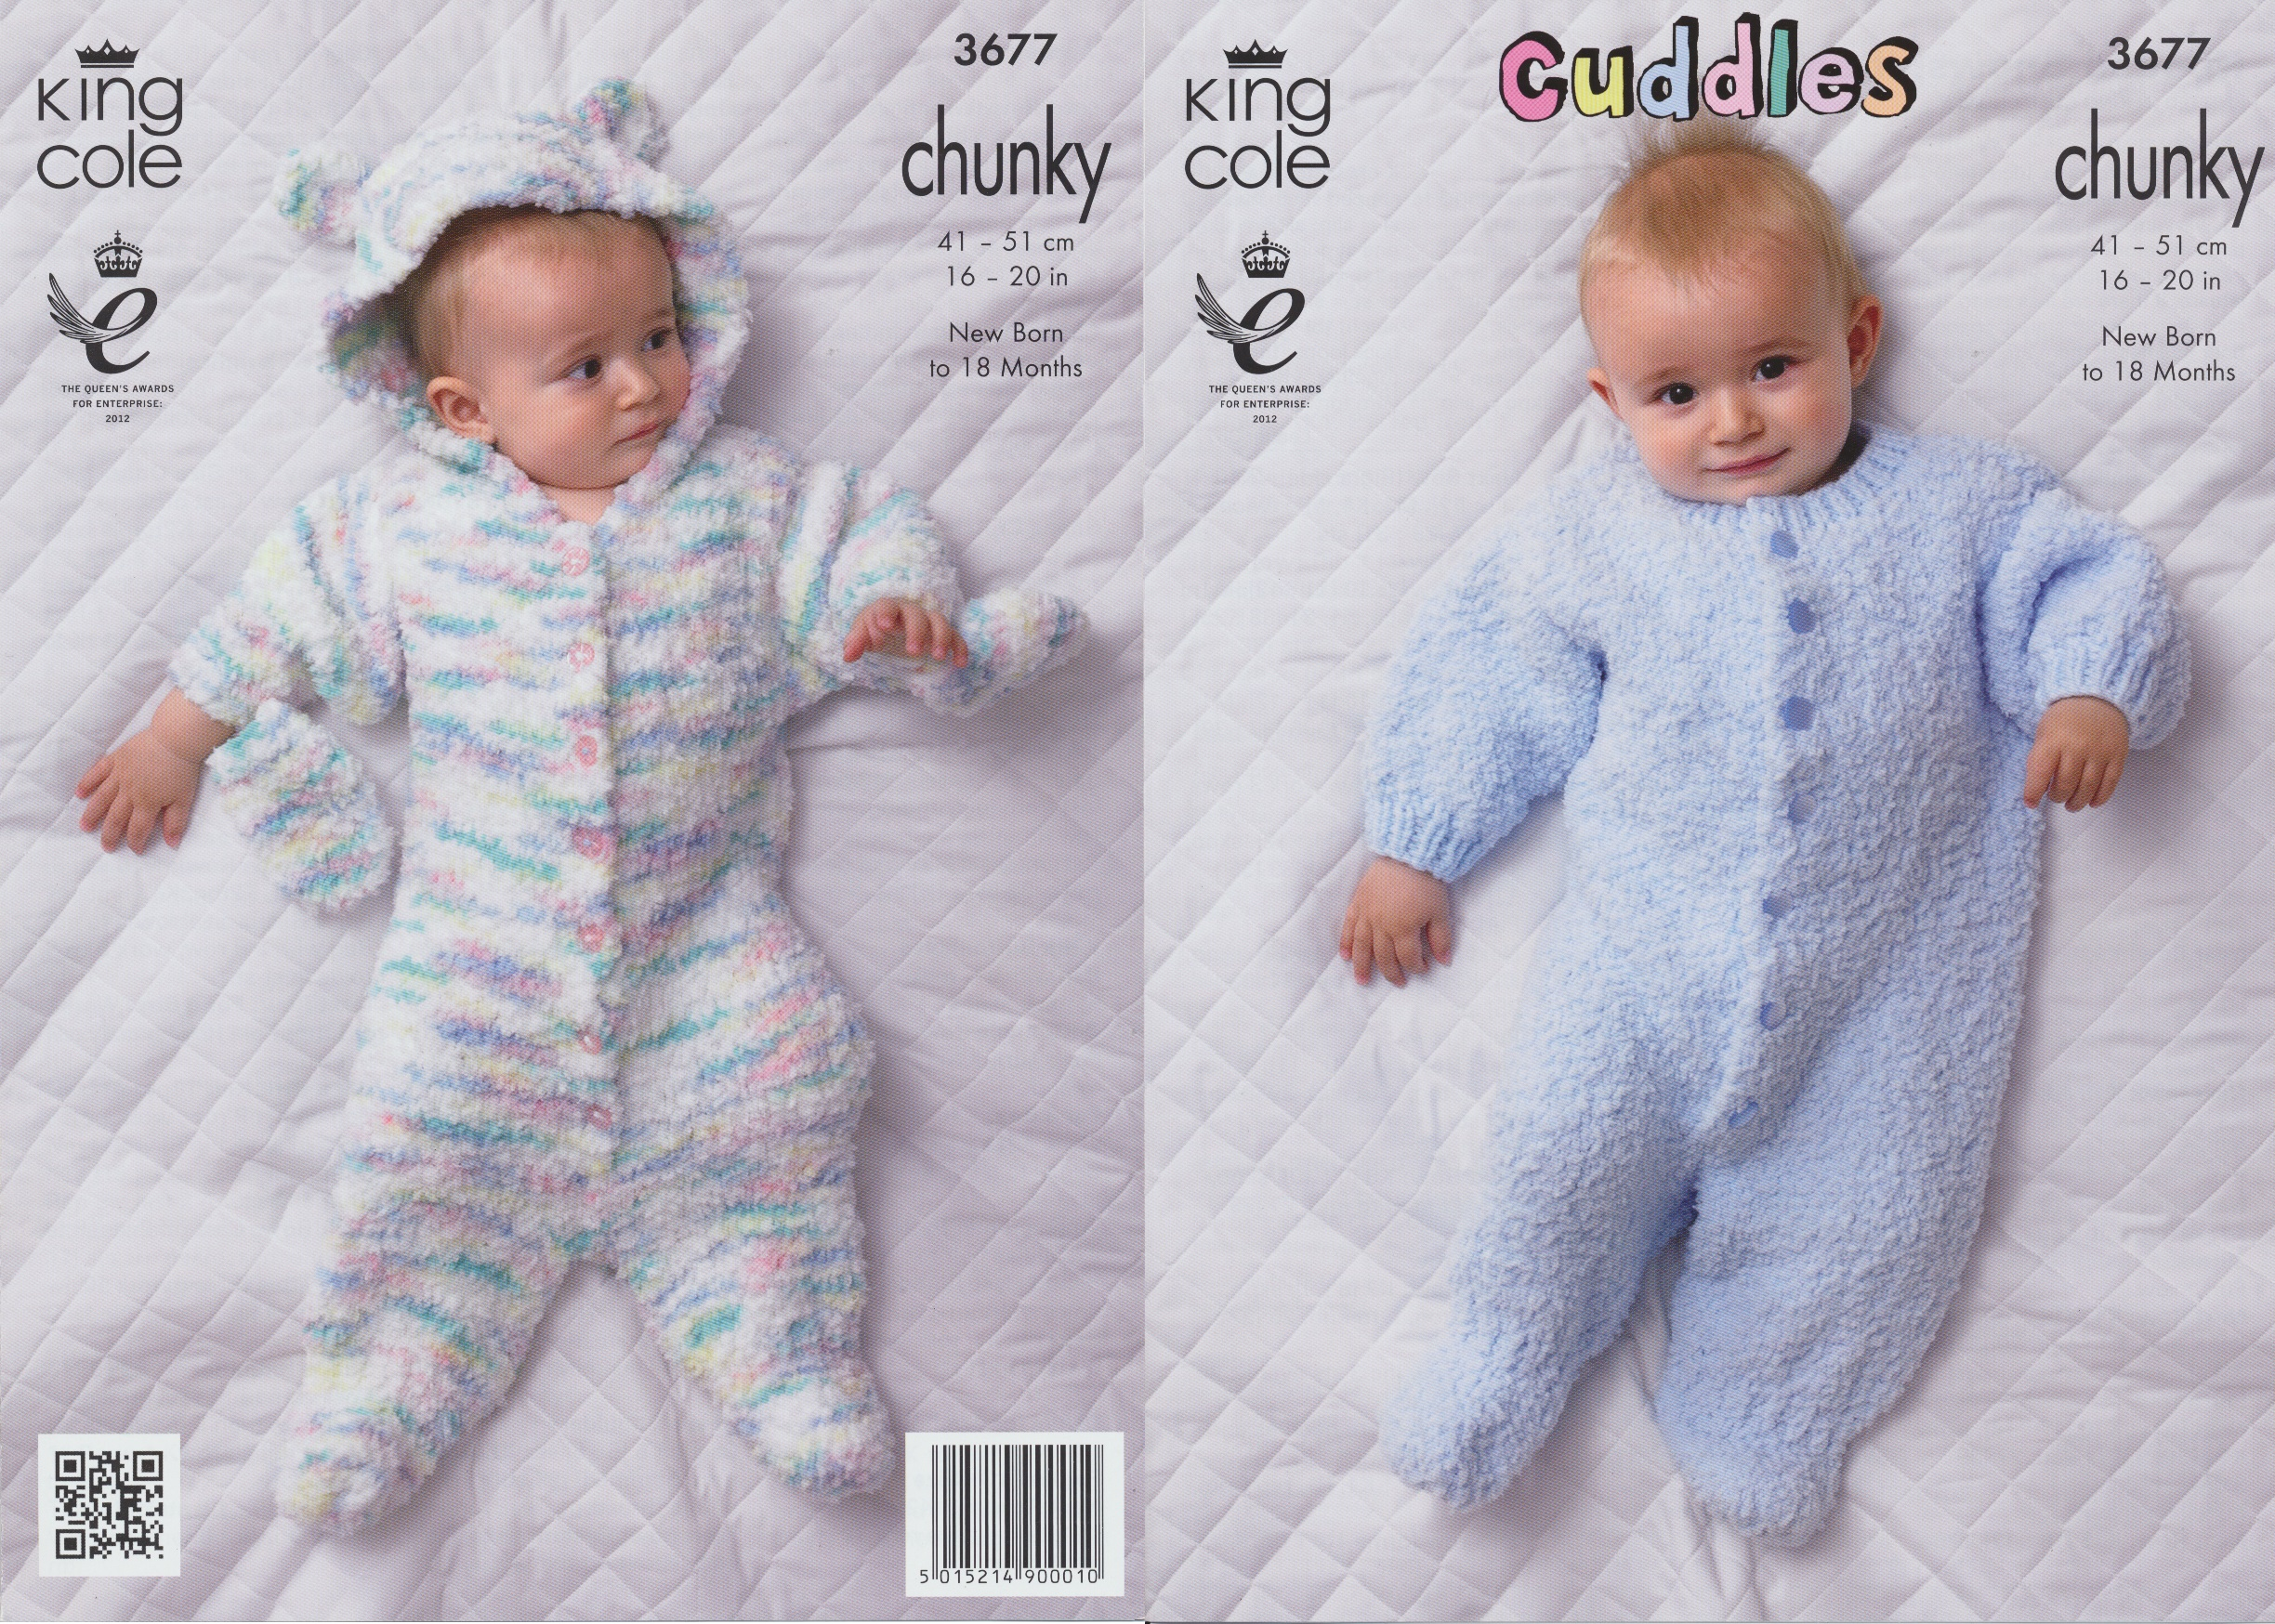 Baby King Cole Knitting Pattern Hooded Snowsuit & Sleepsuit Cuddles ...